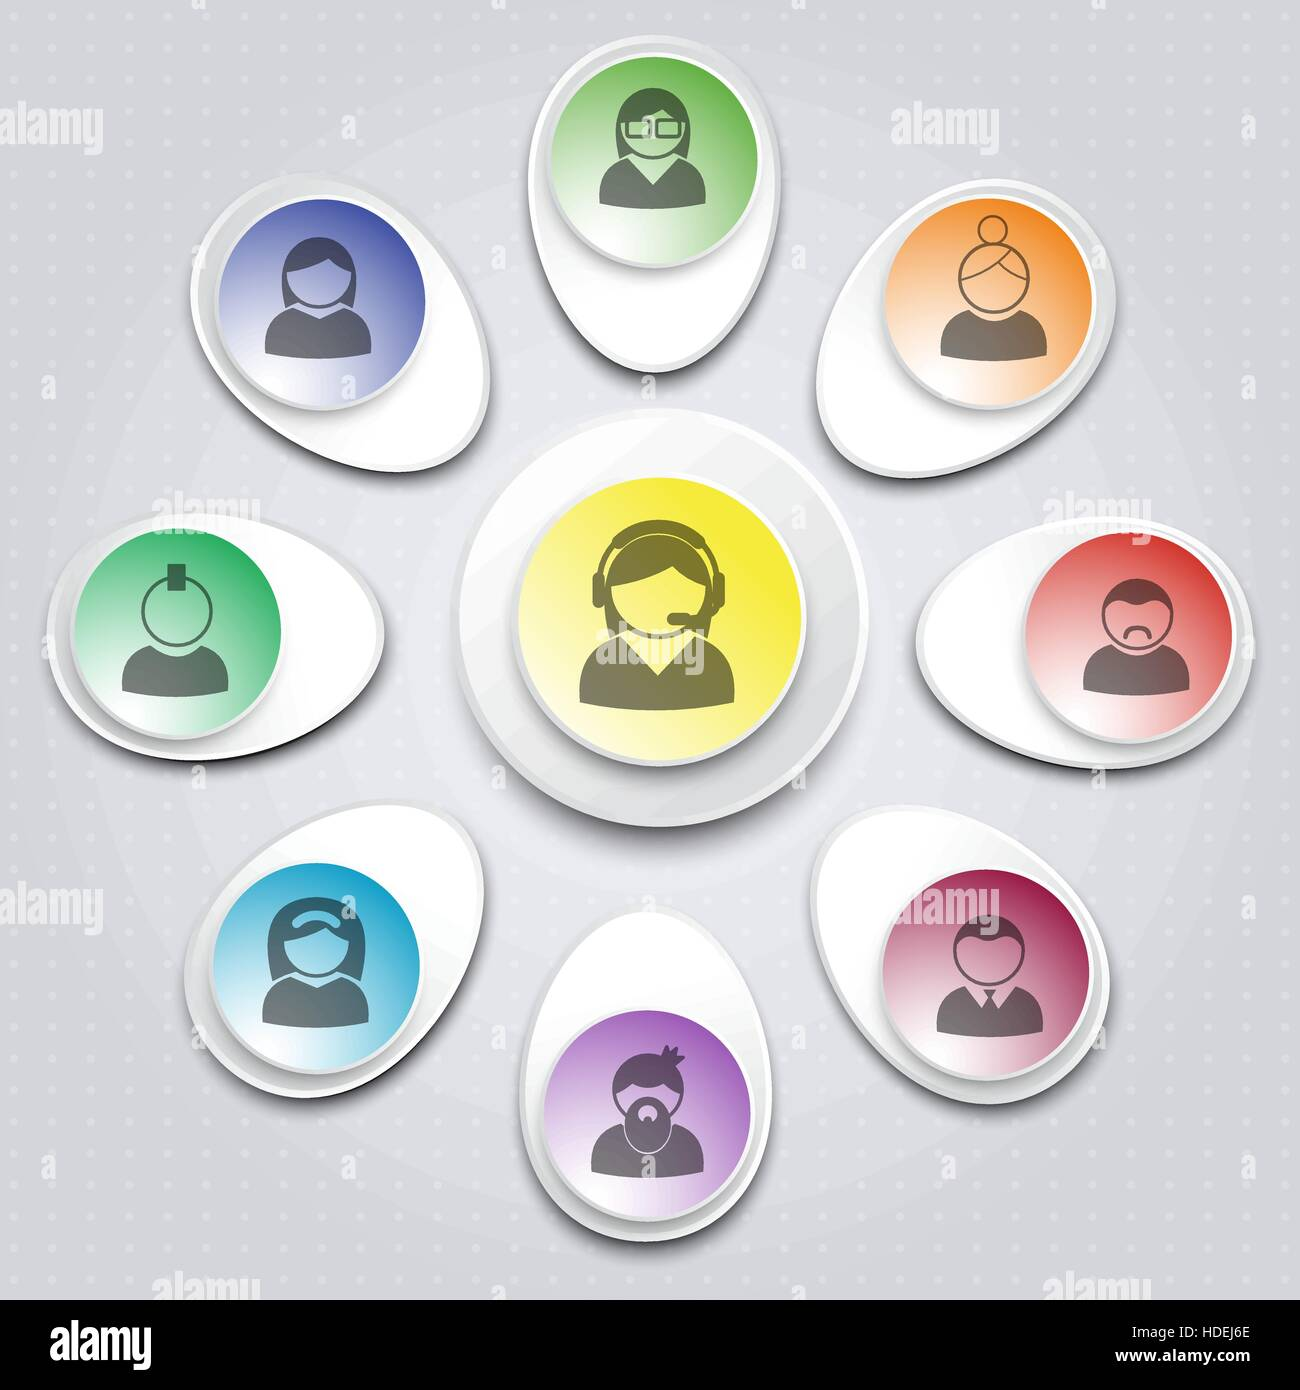 User support  Set of infographic elements with users icons  Design